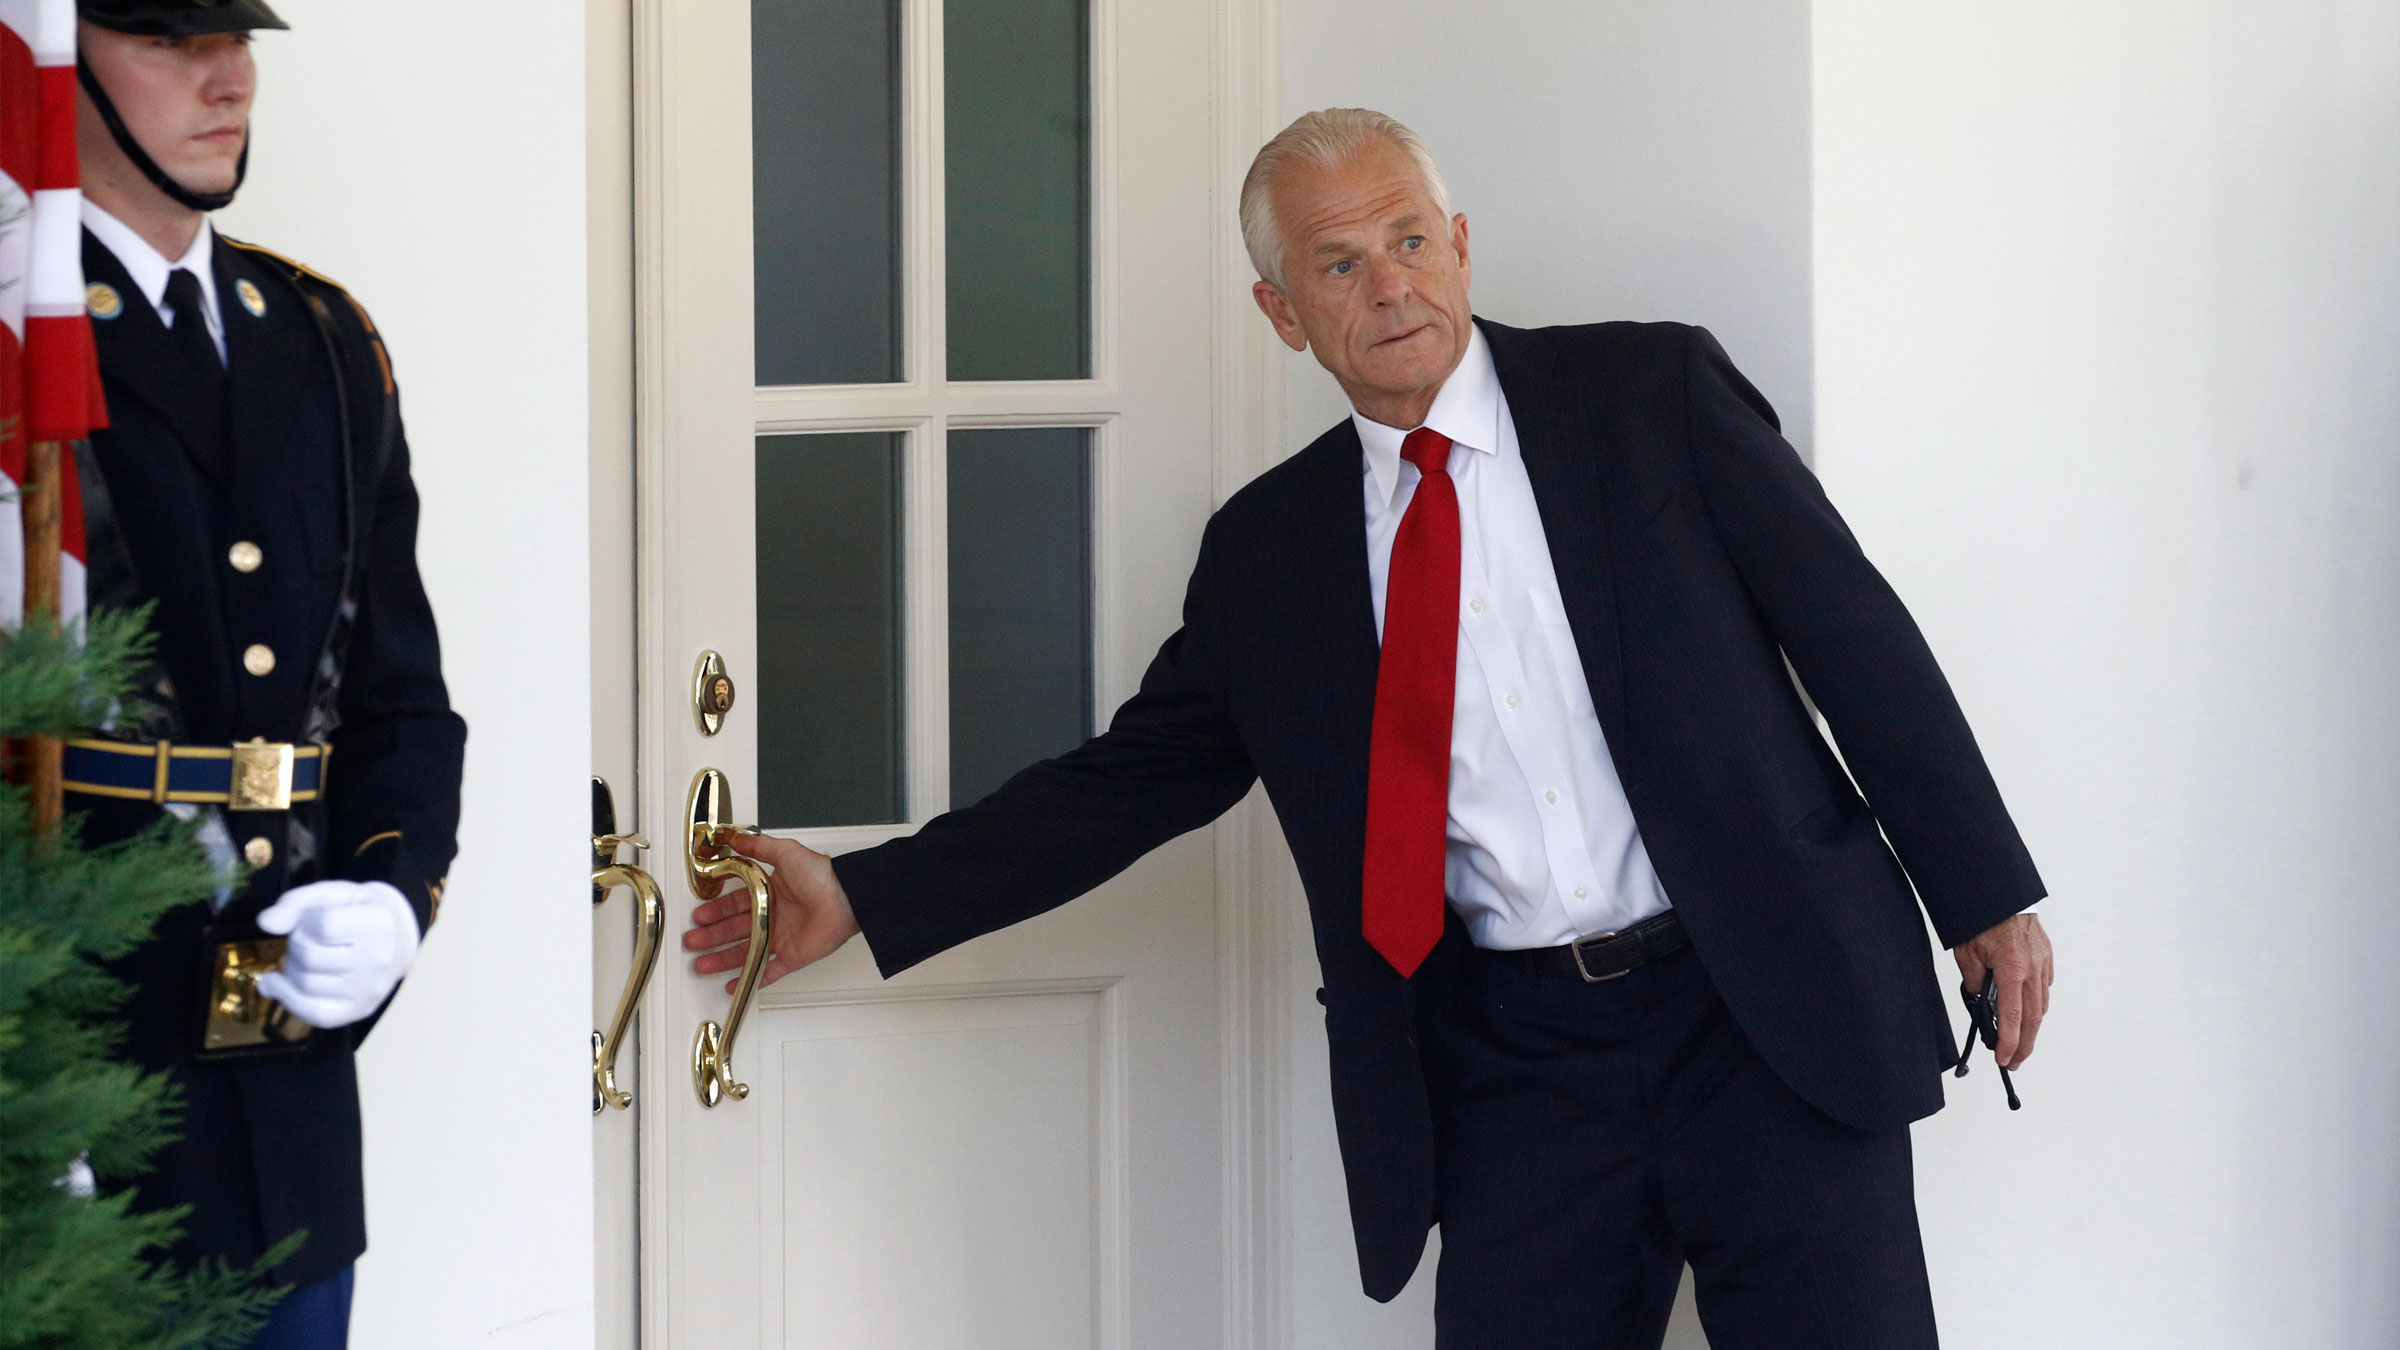 White House trade adviser Peter Navarro enters the West Wing of the White House on July 8.